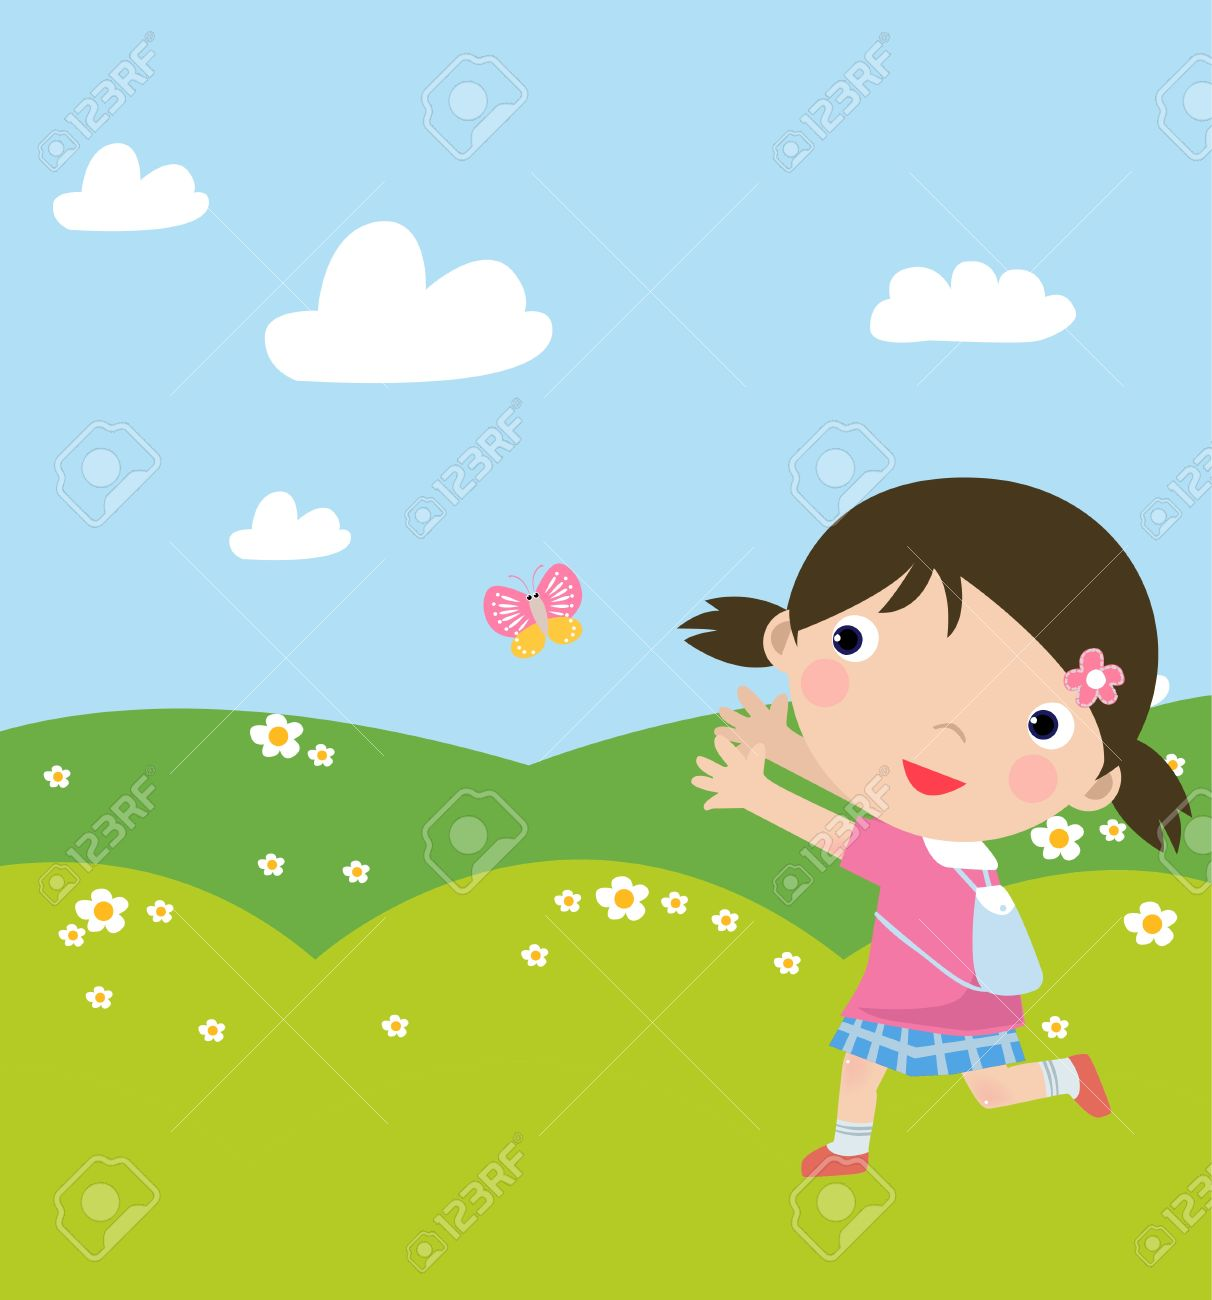 Illustraon of  a cute girl walking and butterly Stock Vector - 8887125